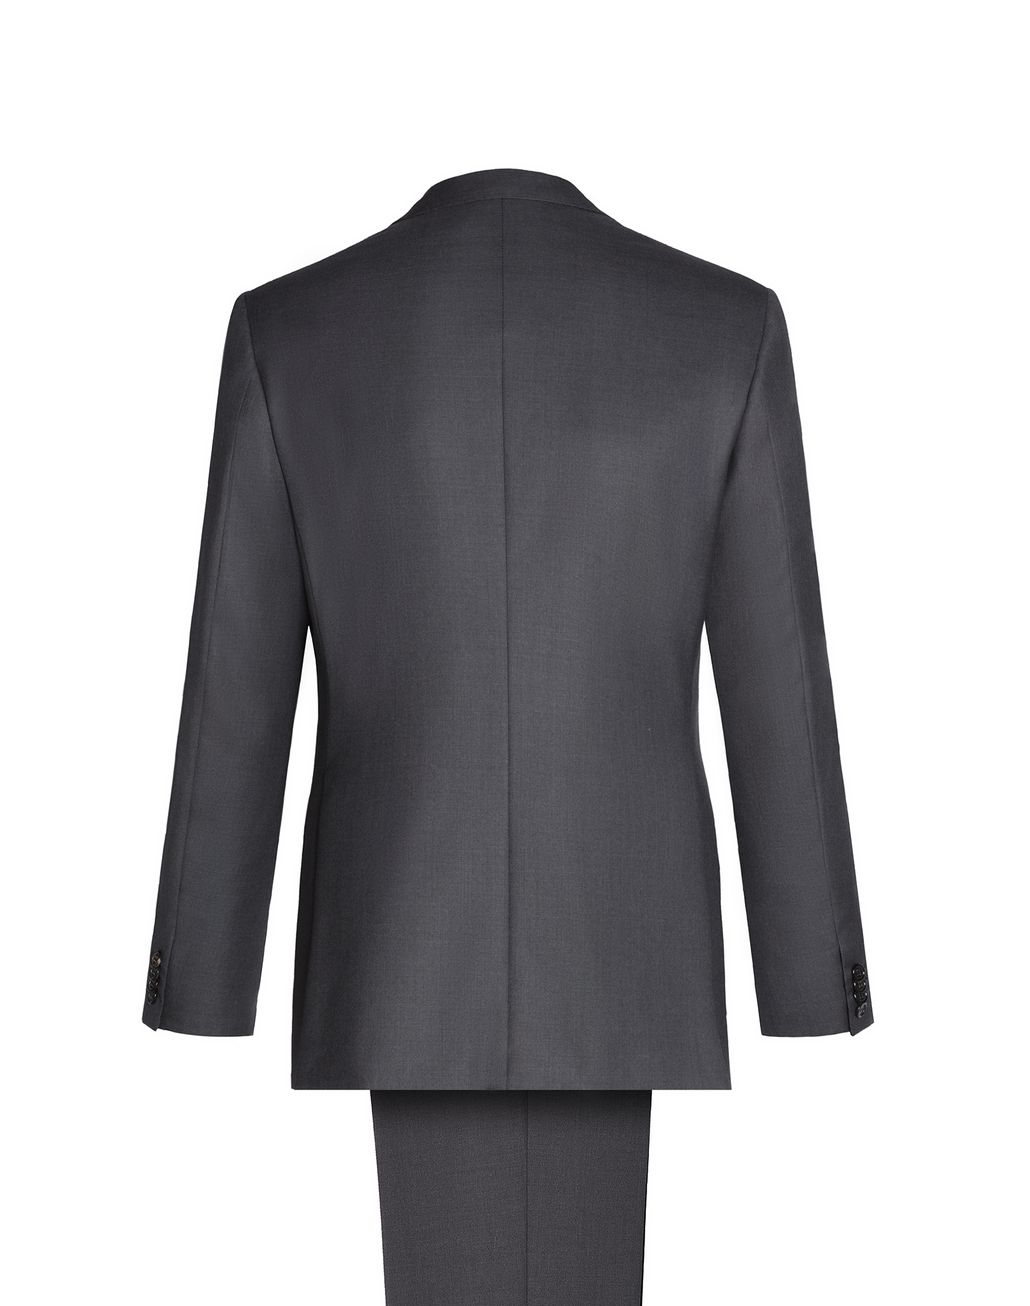 BRIONI Charcoal Madison Suit Suits & Jackets Man r